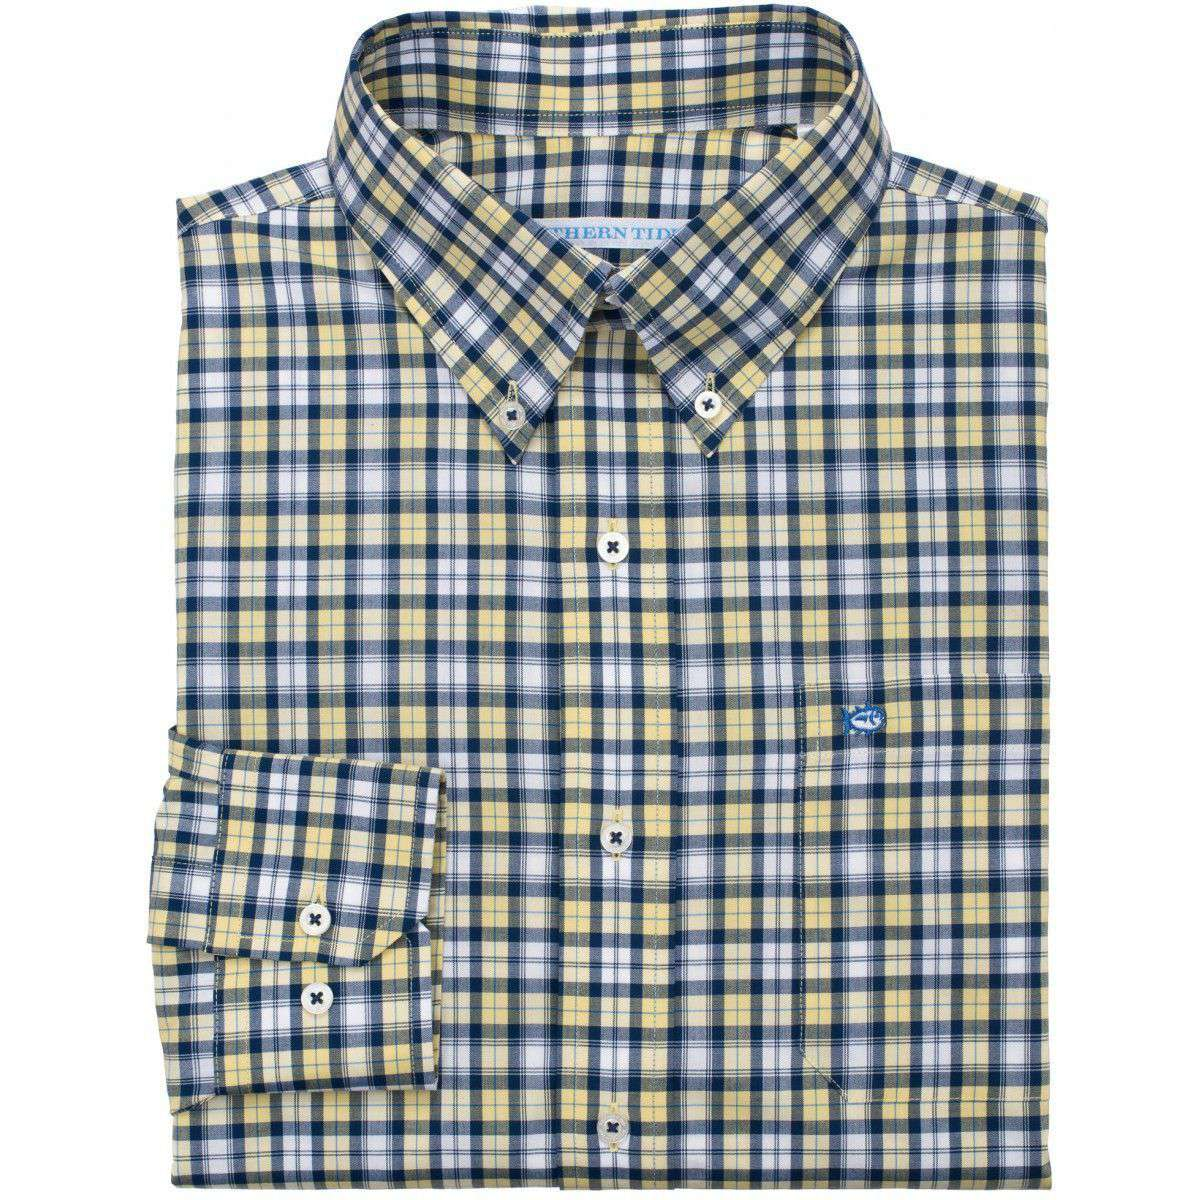 Men's Button Downs - Sonar Plaid Classic Fit Sport Shirt In Sunshine By Southern Tide